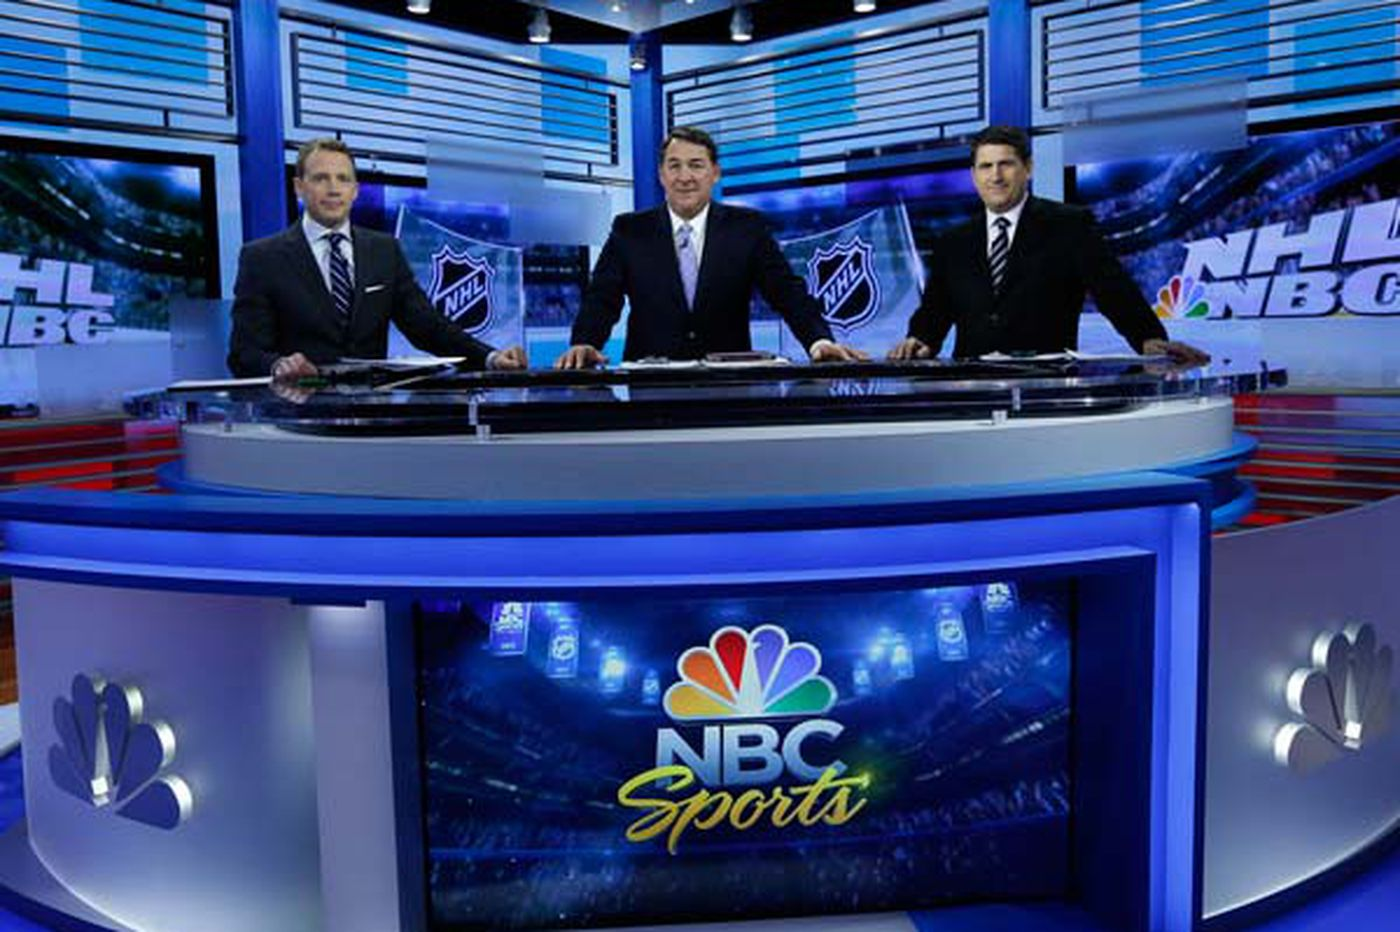 NHL analyst Mike Milbury stepping away from NBC Sports after insensitive comment about women